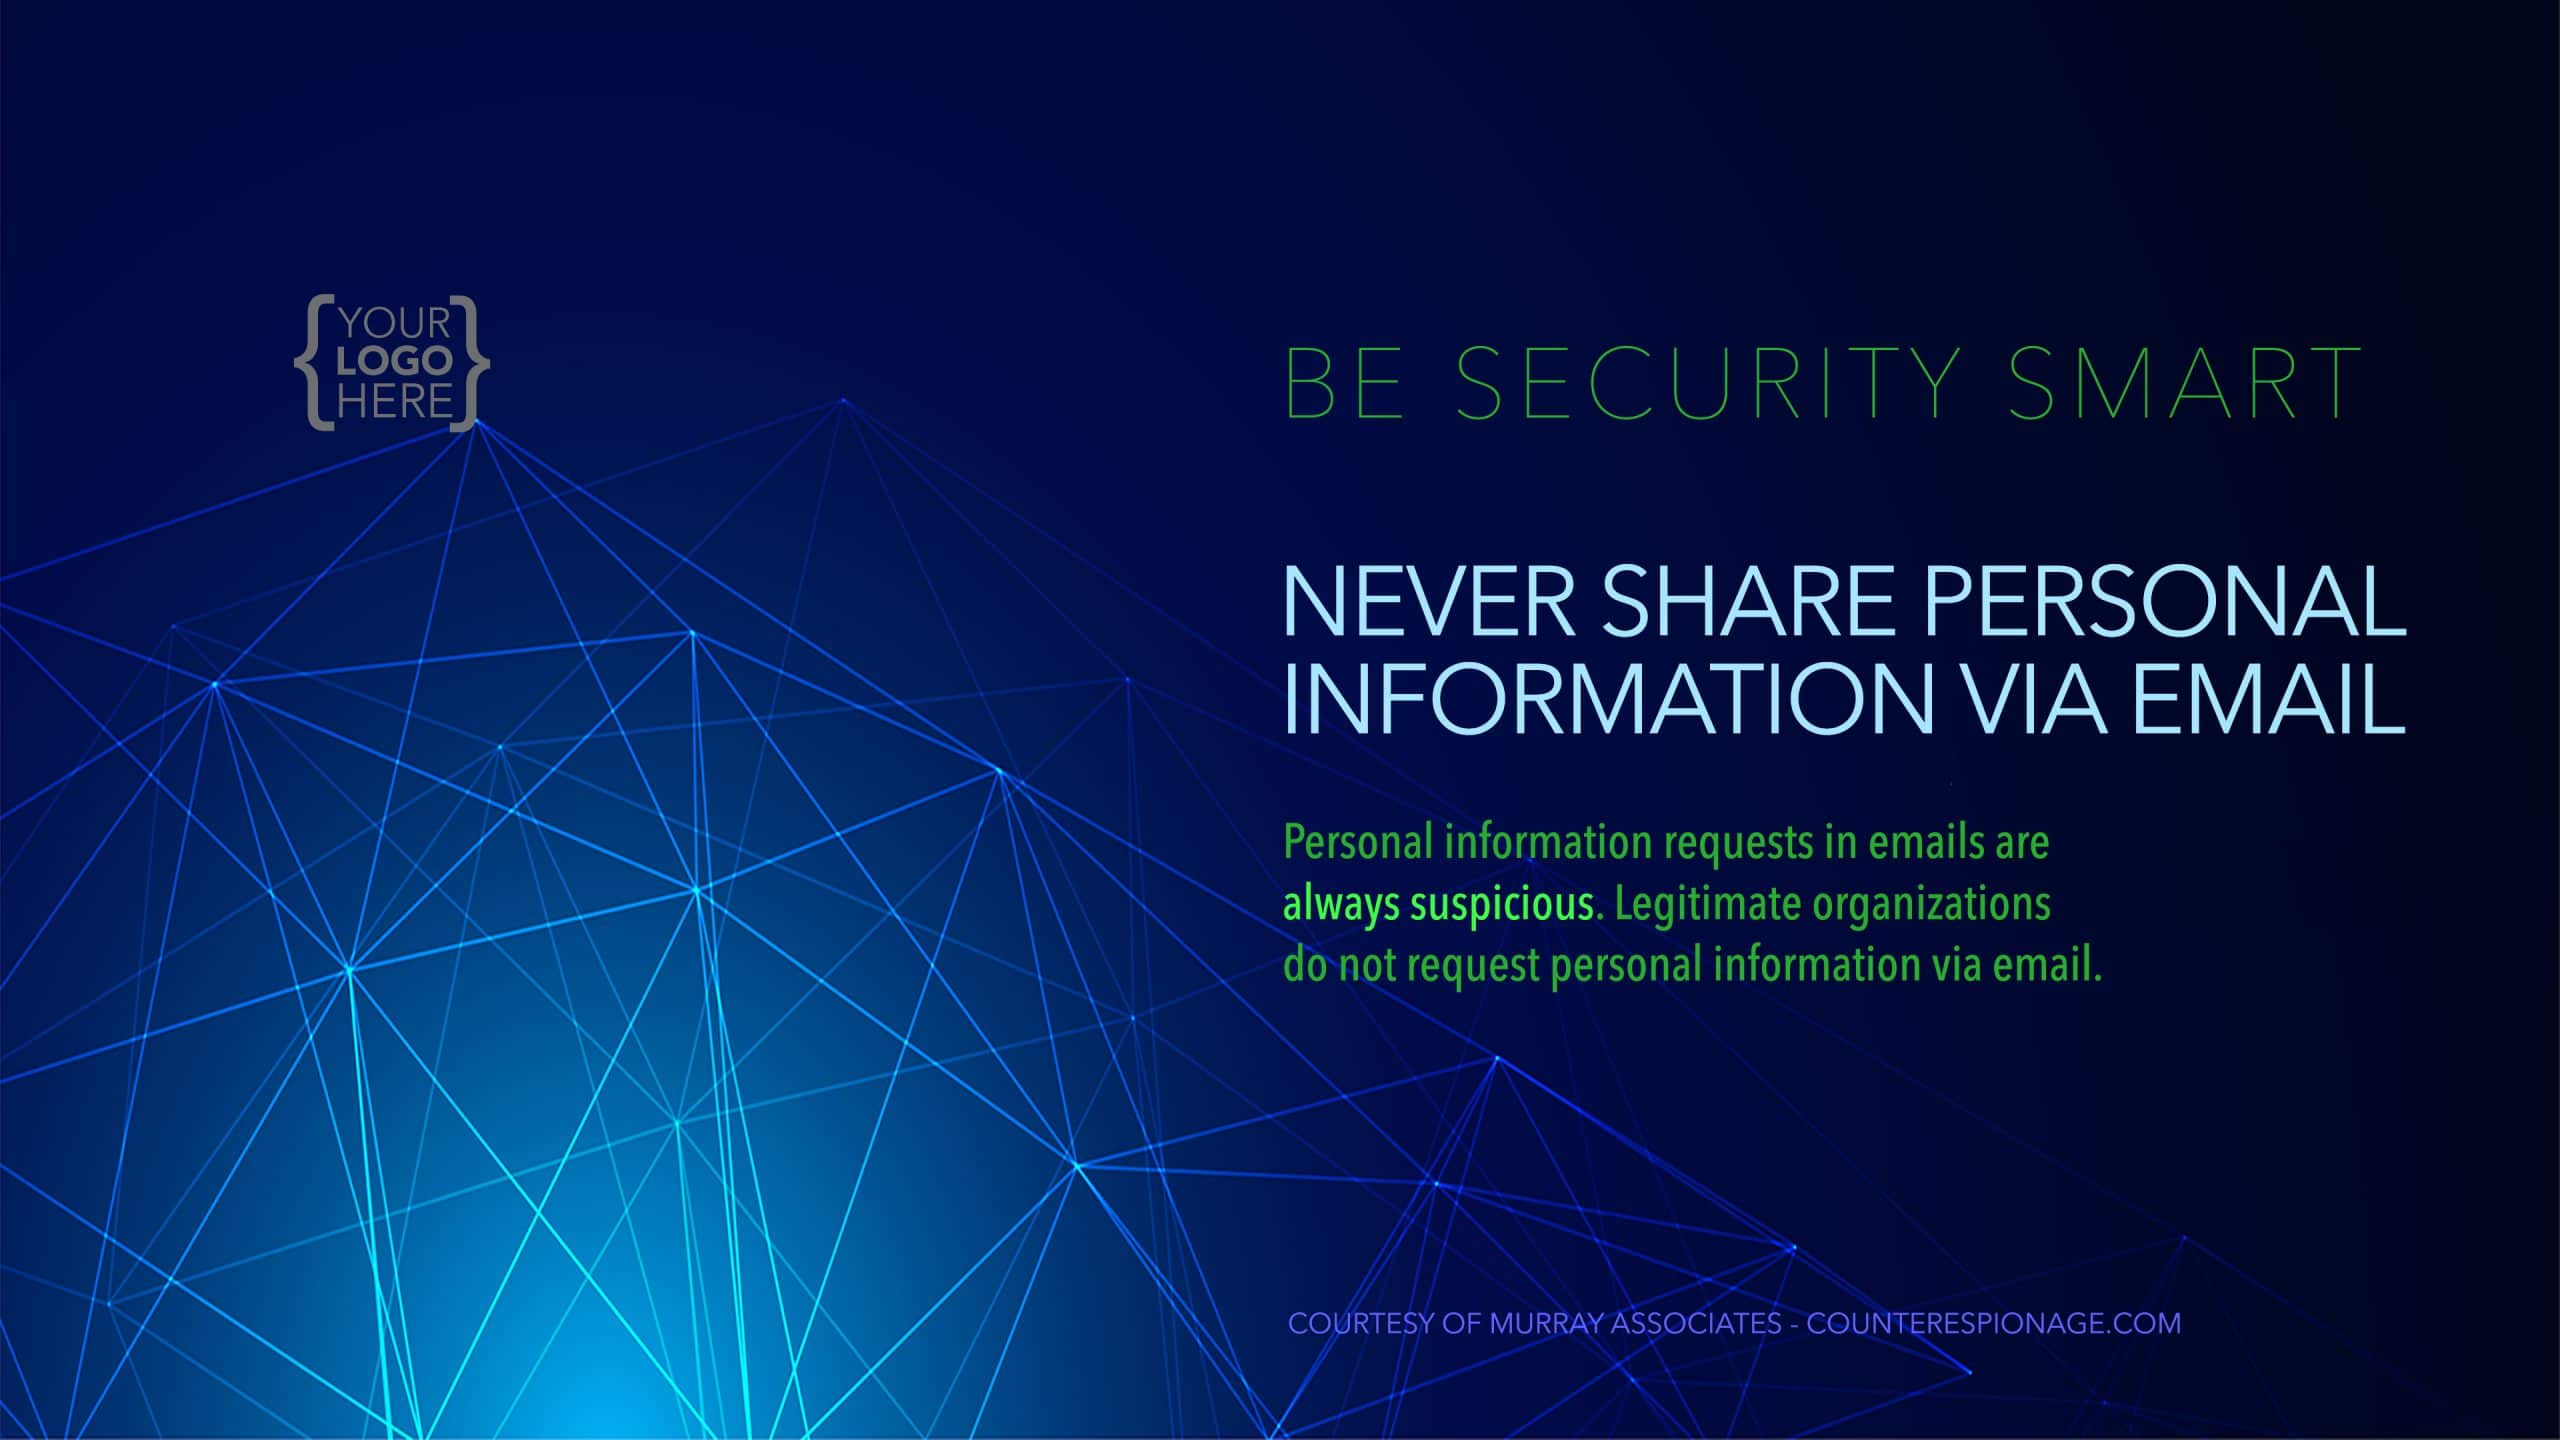 Security Reminder Screen Saver 2 - Never Share